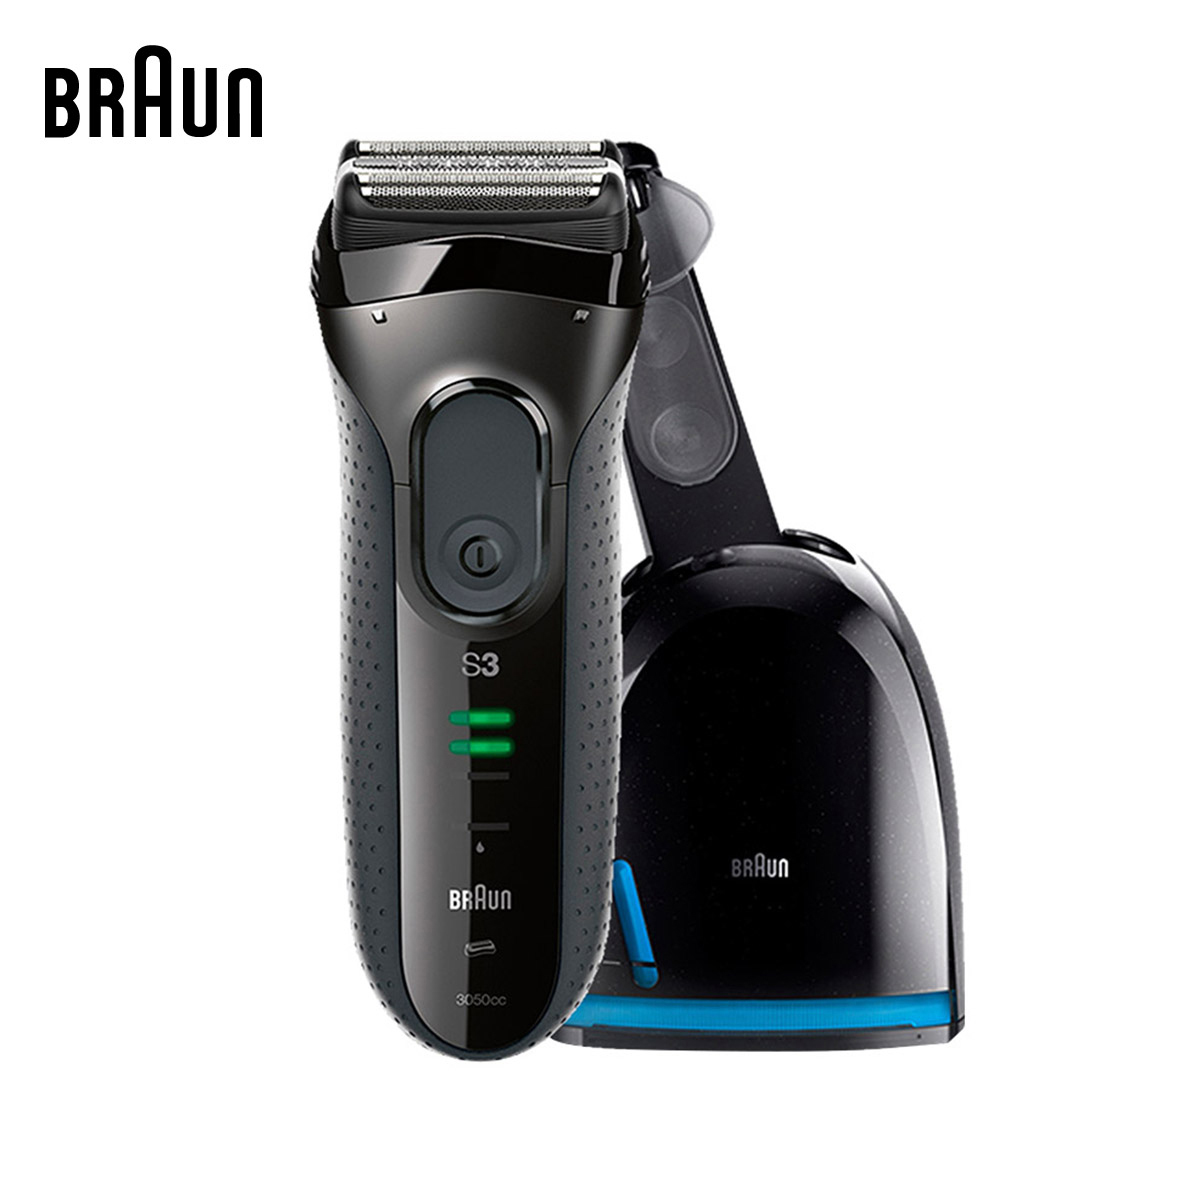 Braun Electric Shavers 3050cc Men Electric Razors Washable Reciprocating Blades Automatic Cleaning Center(China (Mainland))